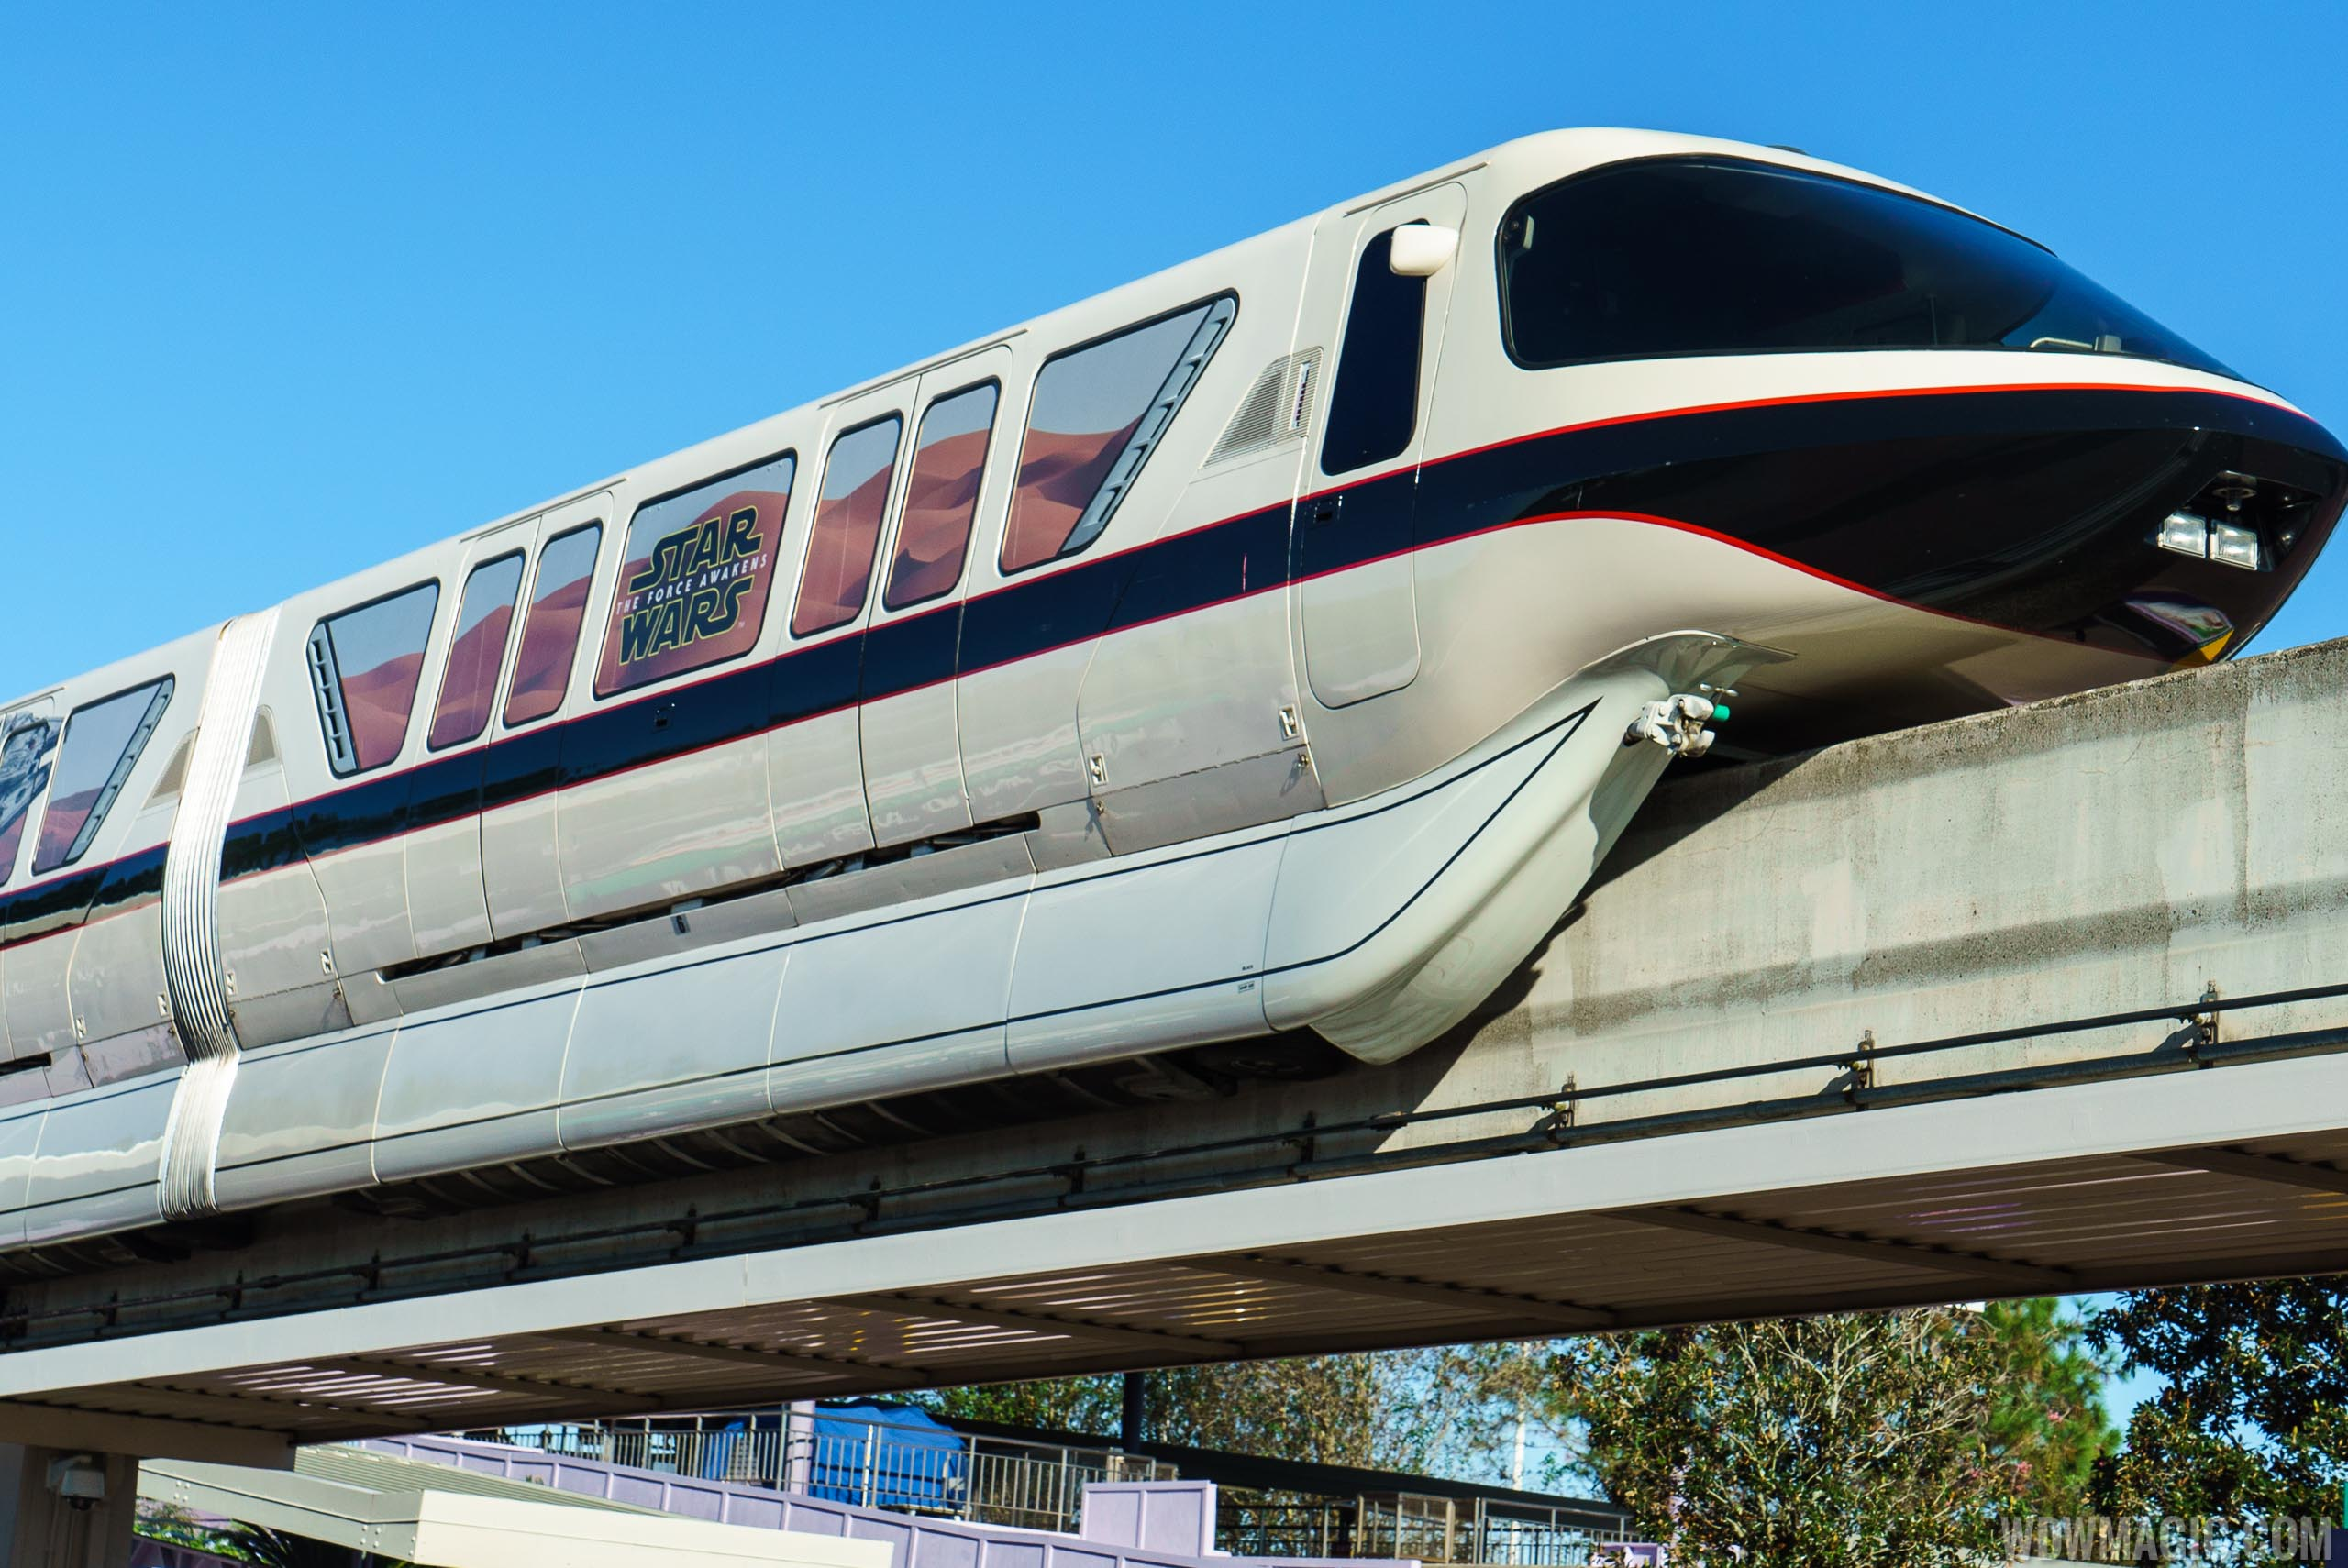 Monorail Videos For Kids